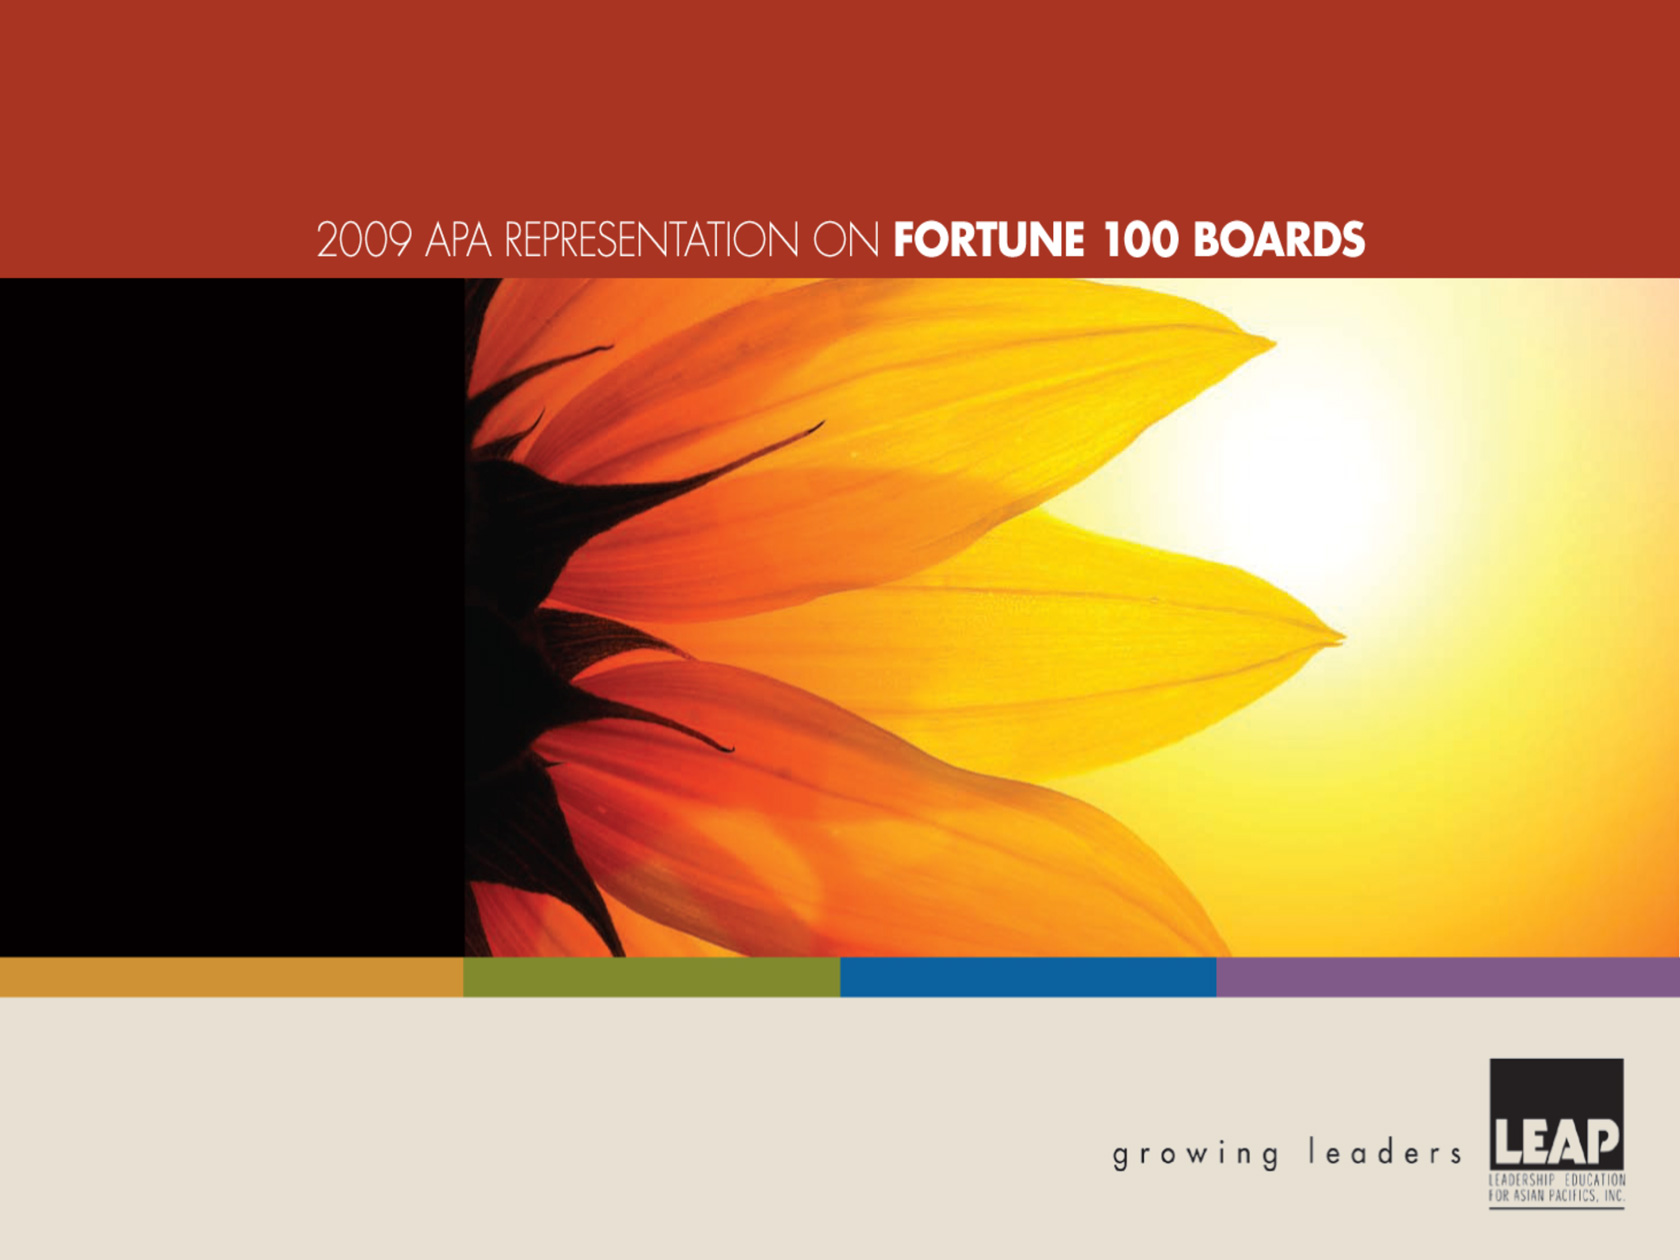 FINAL-LEAP-2009-APA-Representation-on-Fortune-100-Boards-Cover.jpg